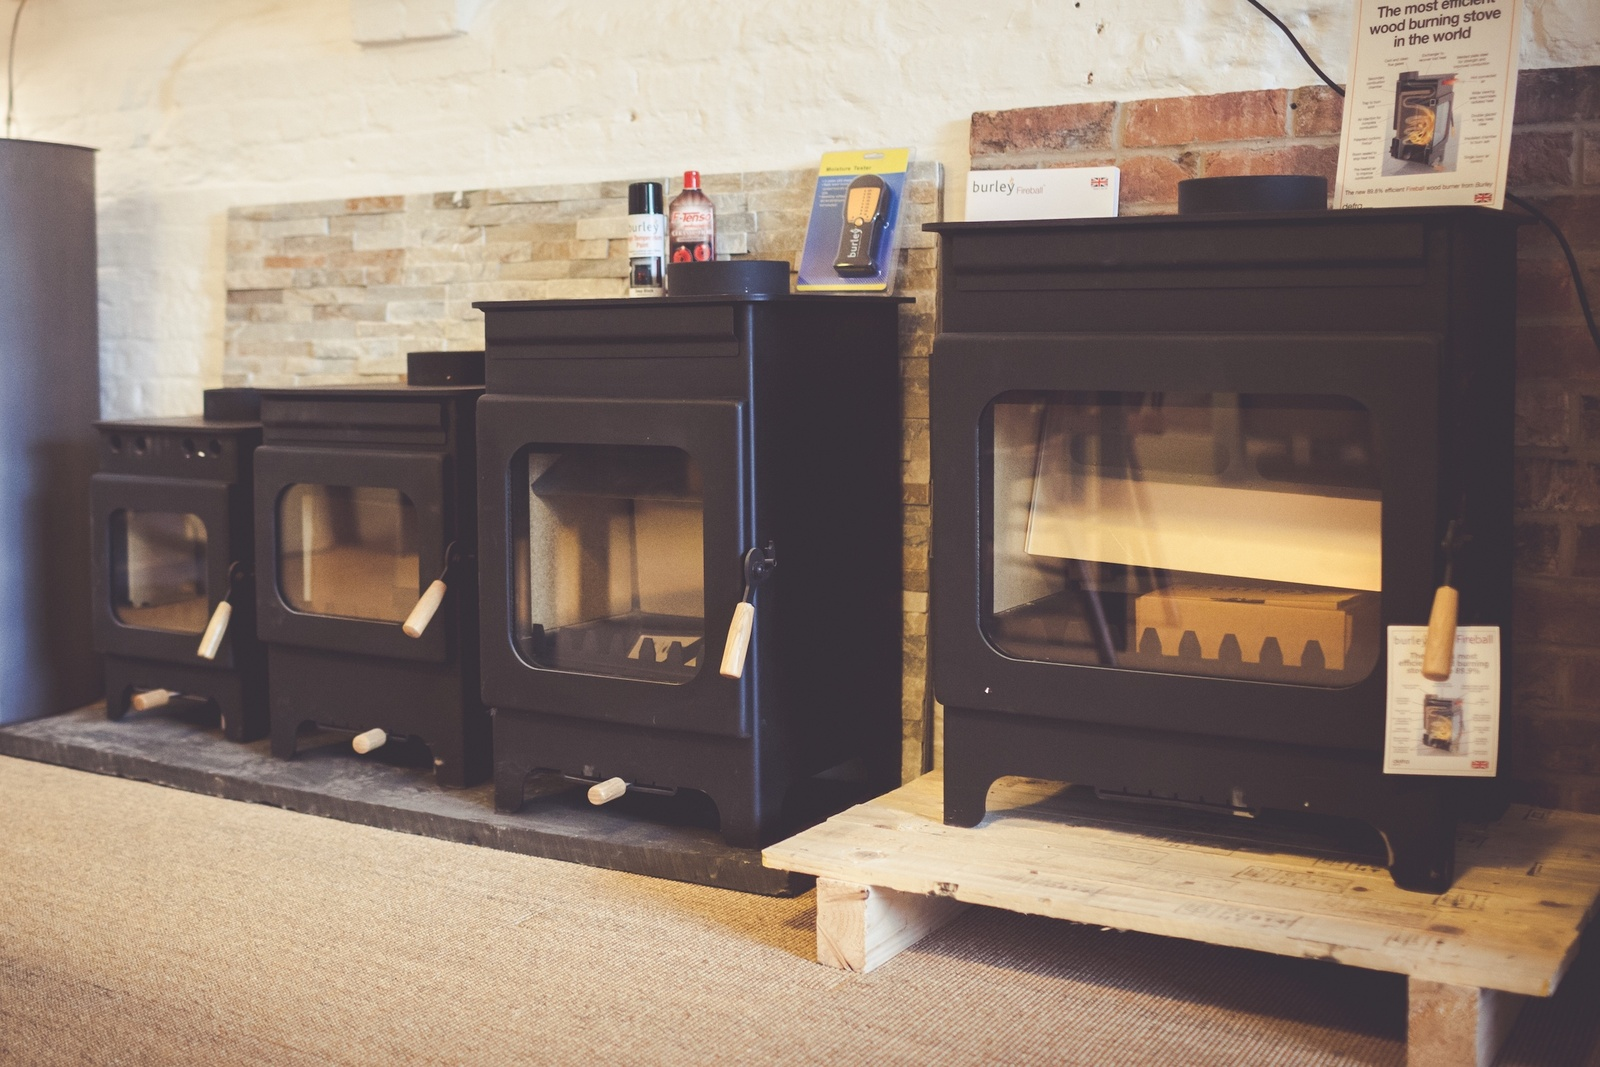 The Burley Fireball display at our Bledlow showroom